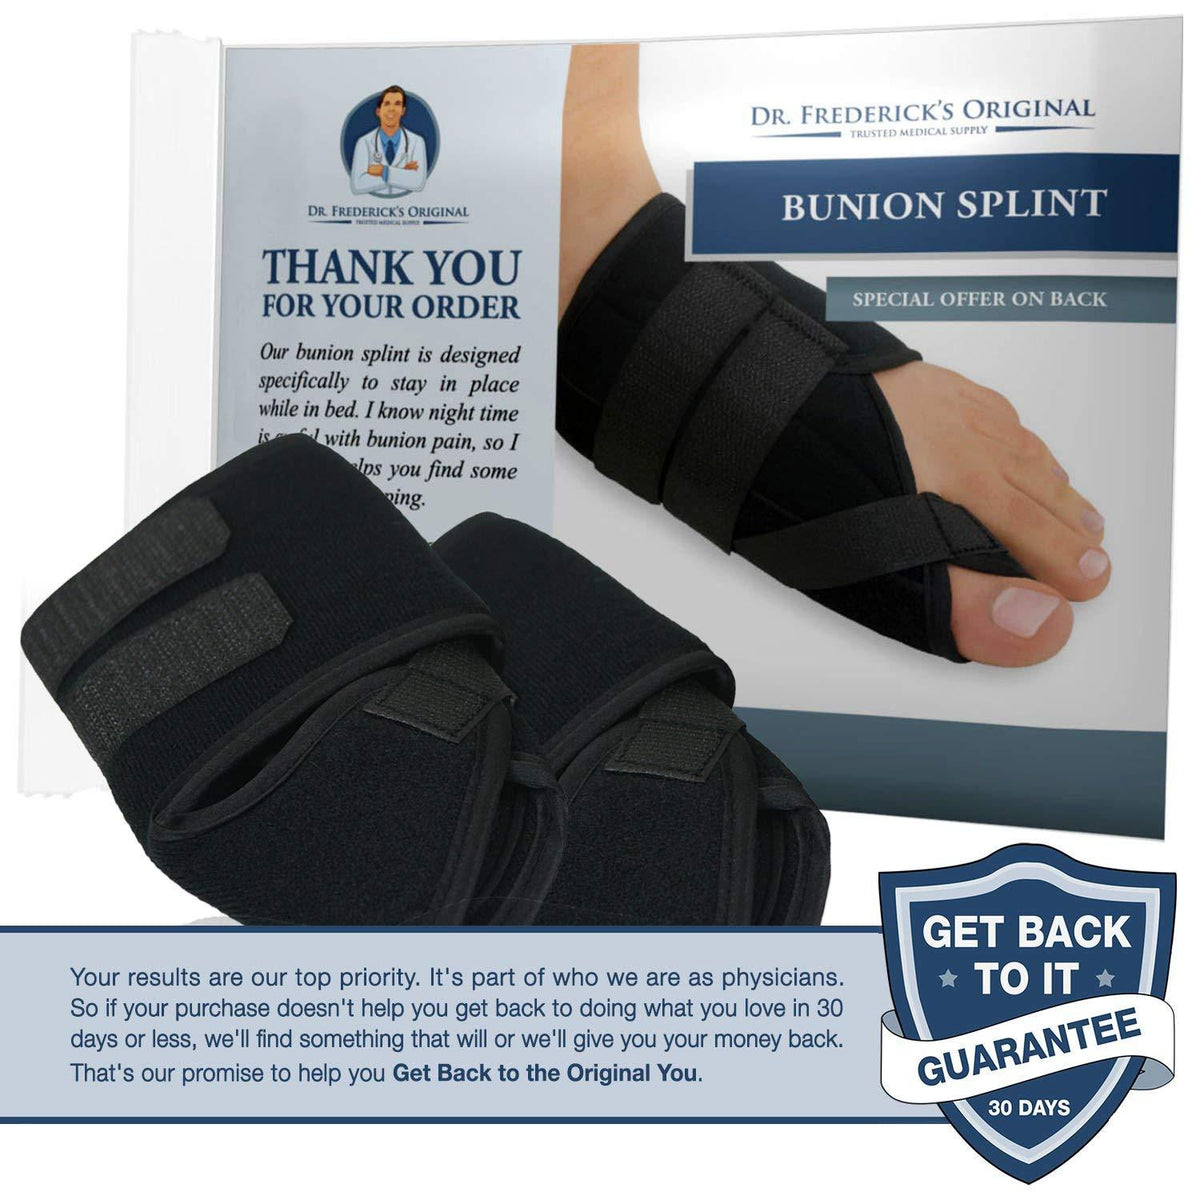 Dr. Frederick's Original Nighttime Bunion Splints -- 2 Pieces - for Night Splinting of Bunions Foot Pain Dr. Frederick's Original